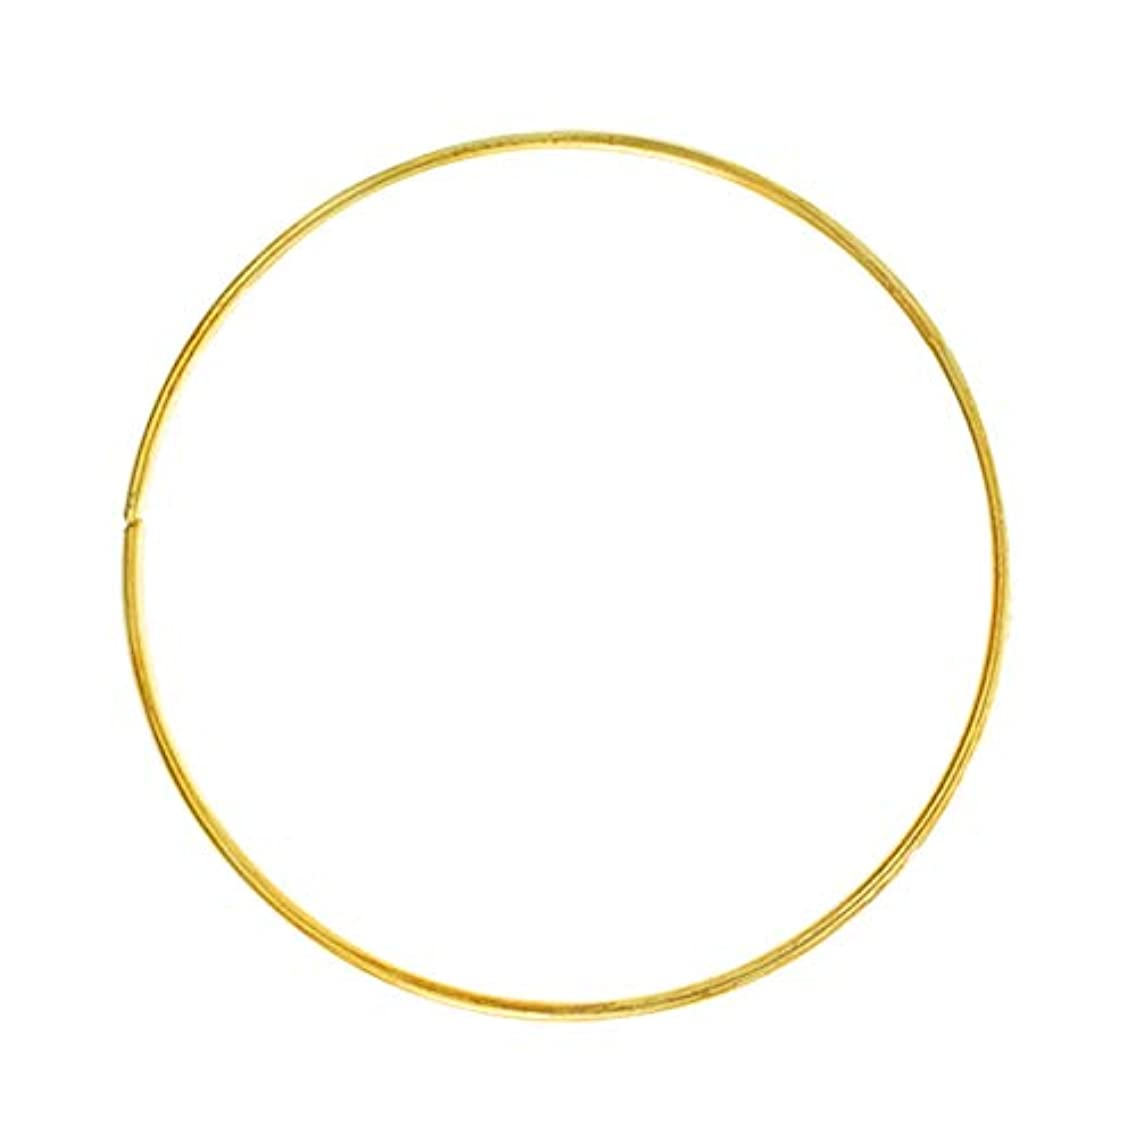 Craft County Golden Welded Metal Wire Hoop Rings – Diameters of 2, 3, 4, 5, 6 Inches – Available in Single, 5, 10 Packs – Great for Crafting, Decoration, Macrame